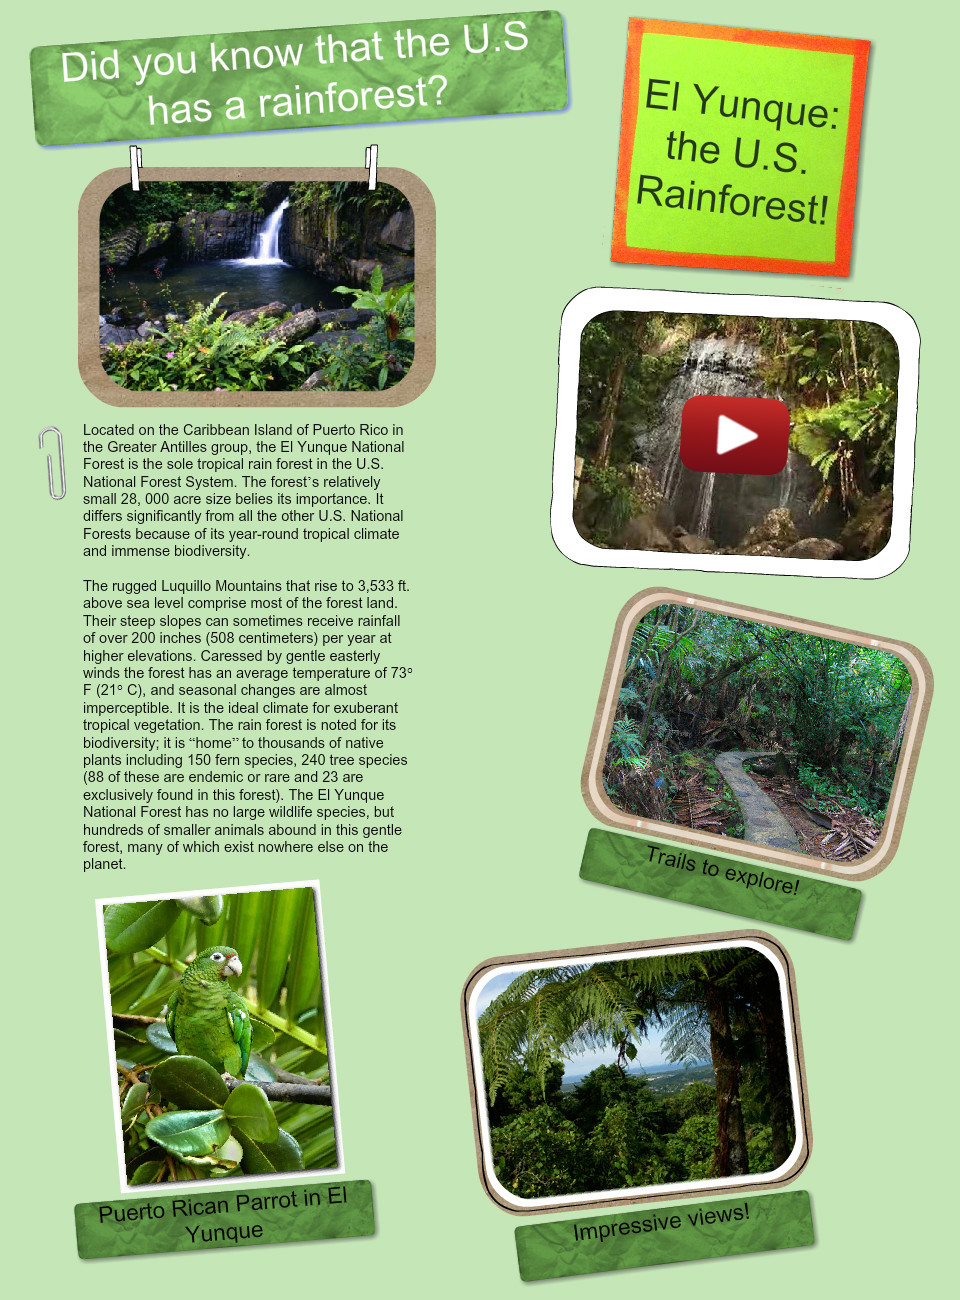 Did you know that the U.S. has a rainforest?